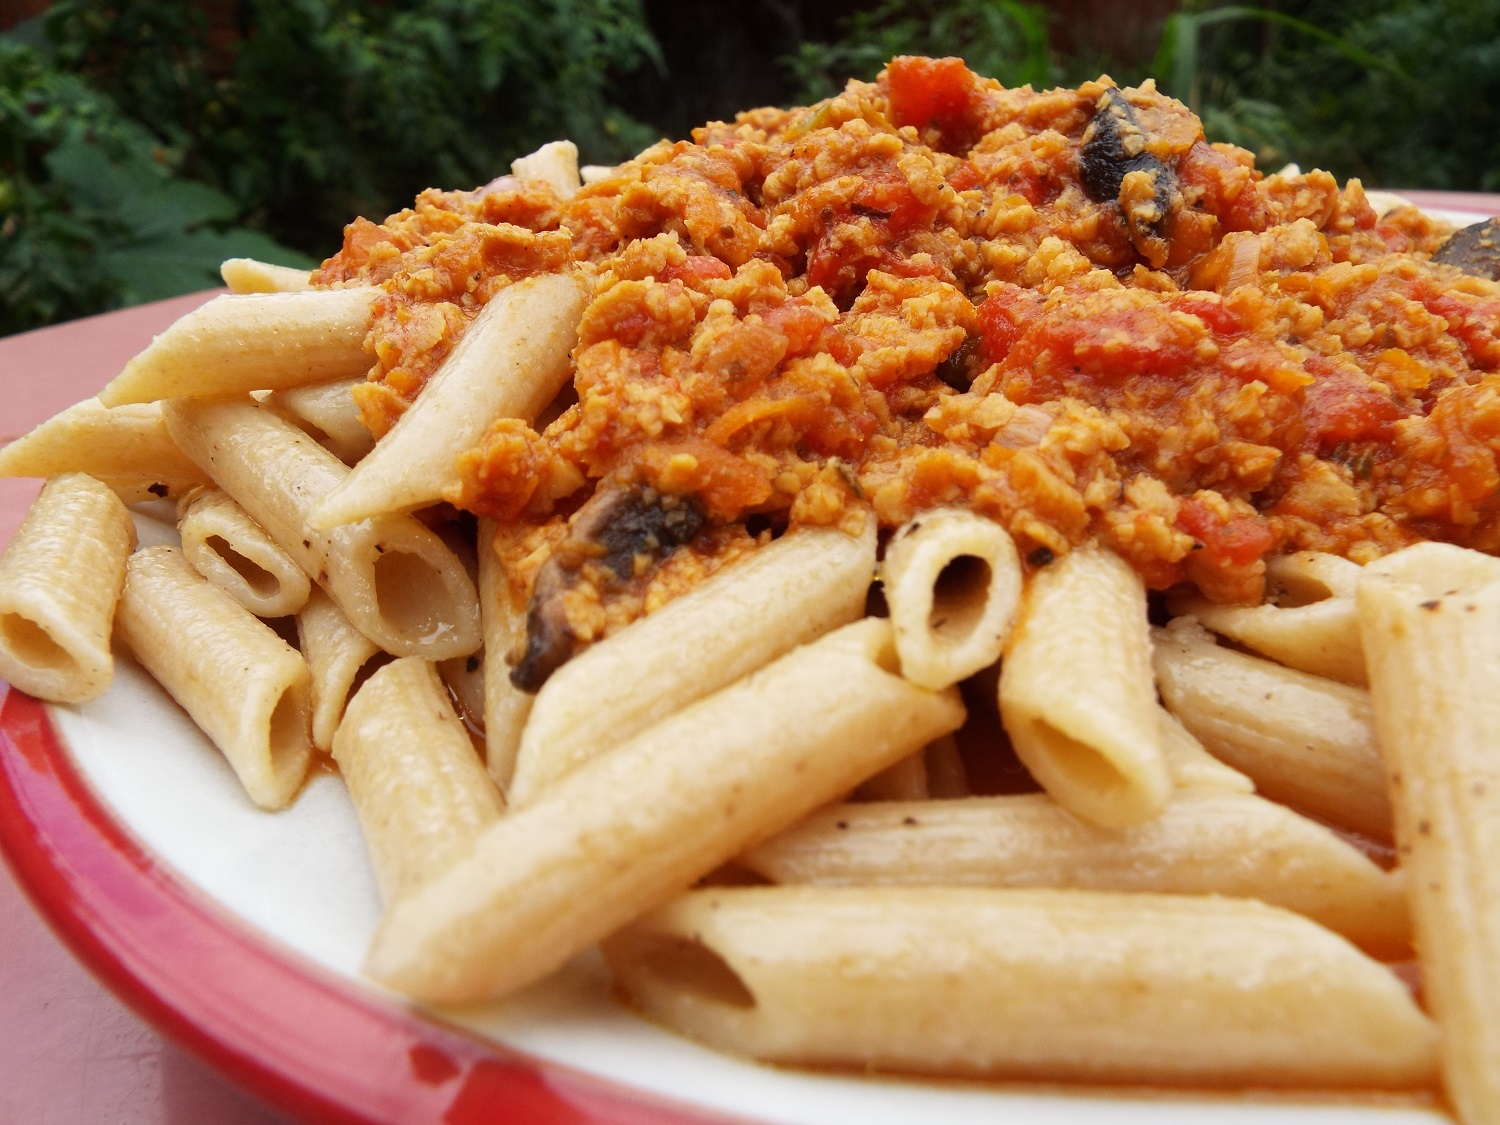 Wholemeal Pasta Bolognese - Pretty much all dried pasta is vegan. This is wholewheat pasts served up with the vegan bolognese.Vegan;vegetarian;health-aware